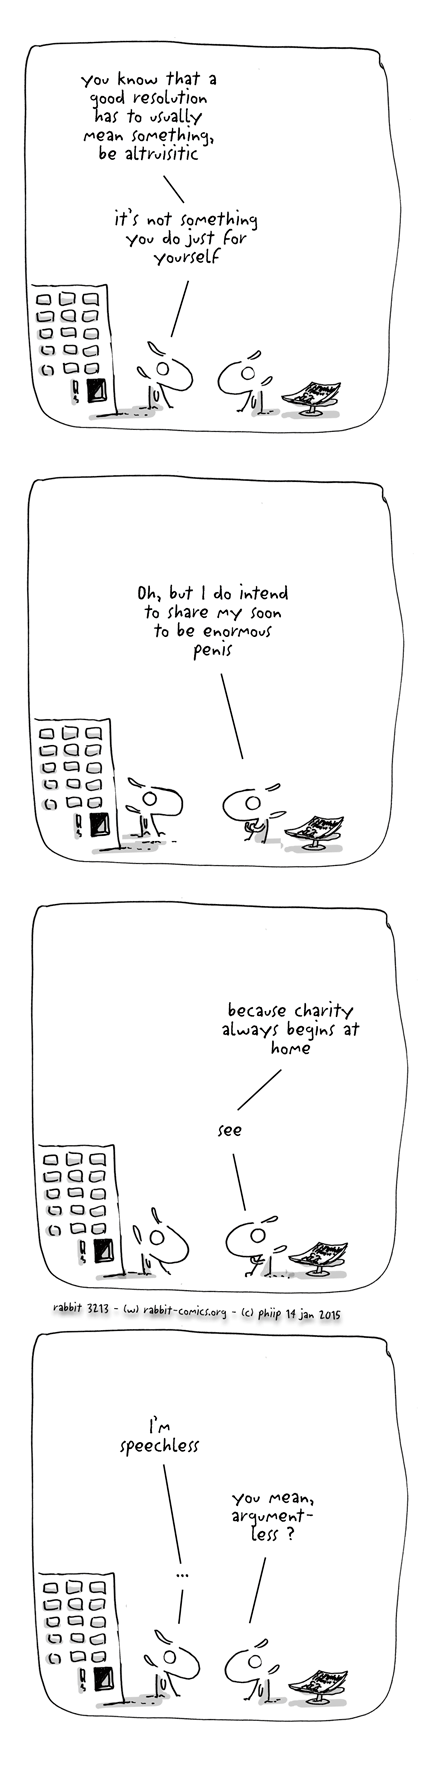 charity always begins at home